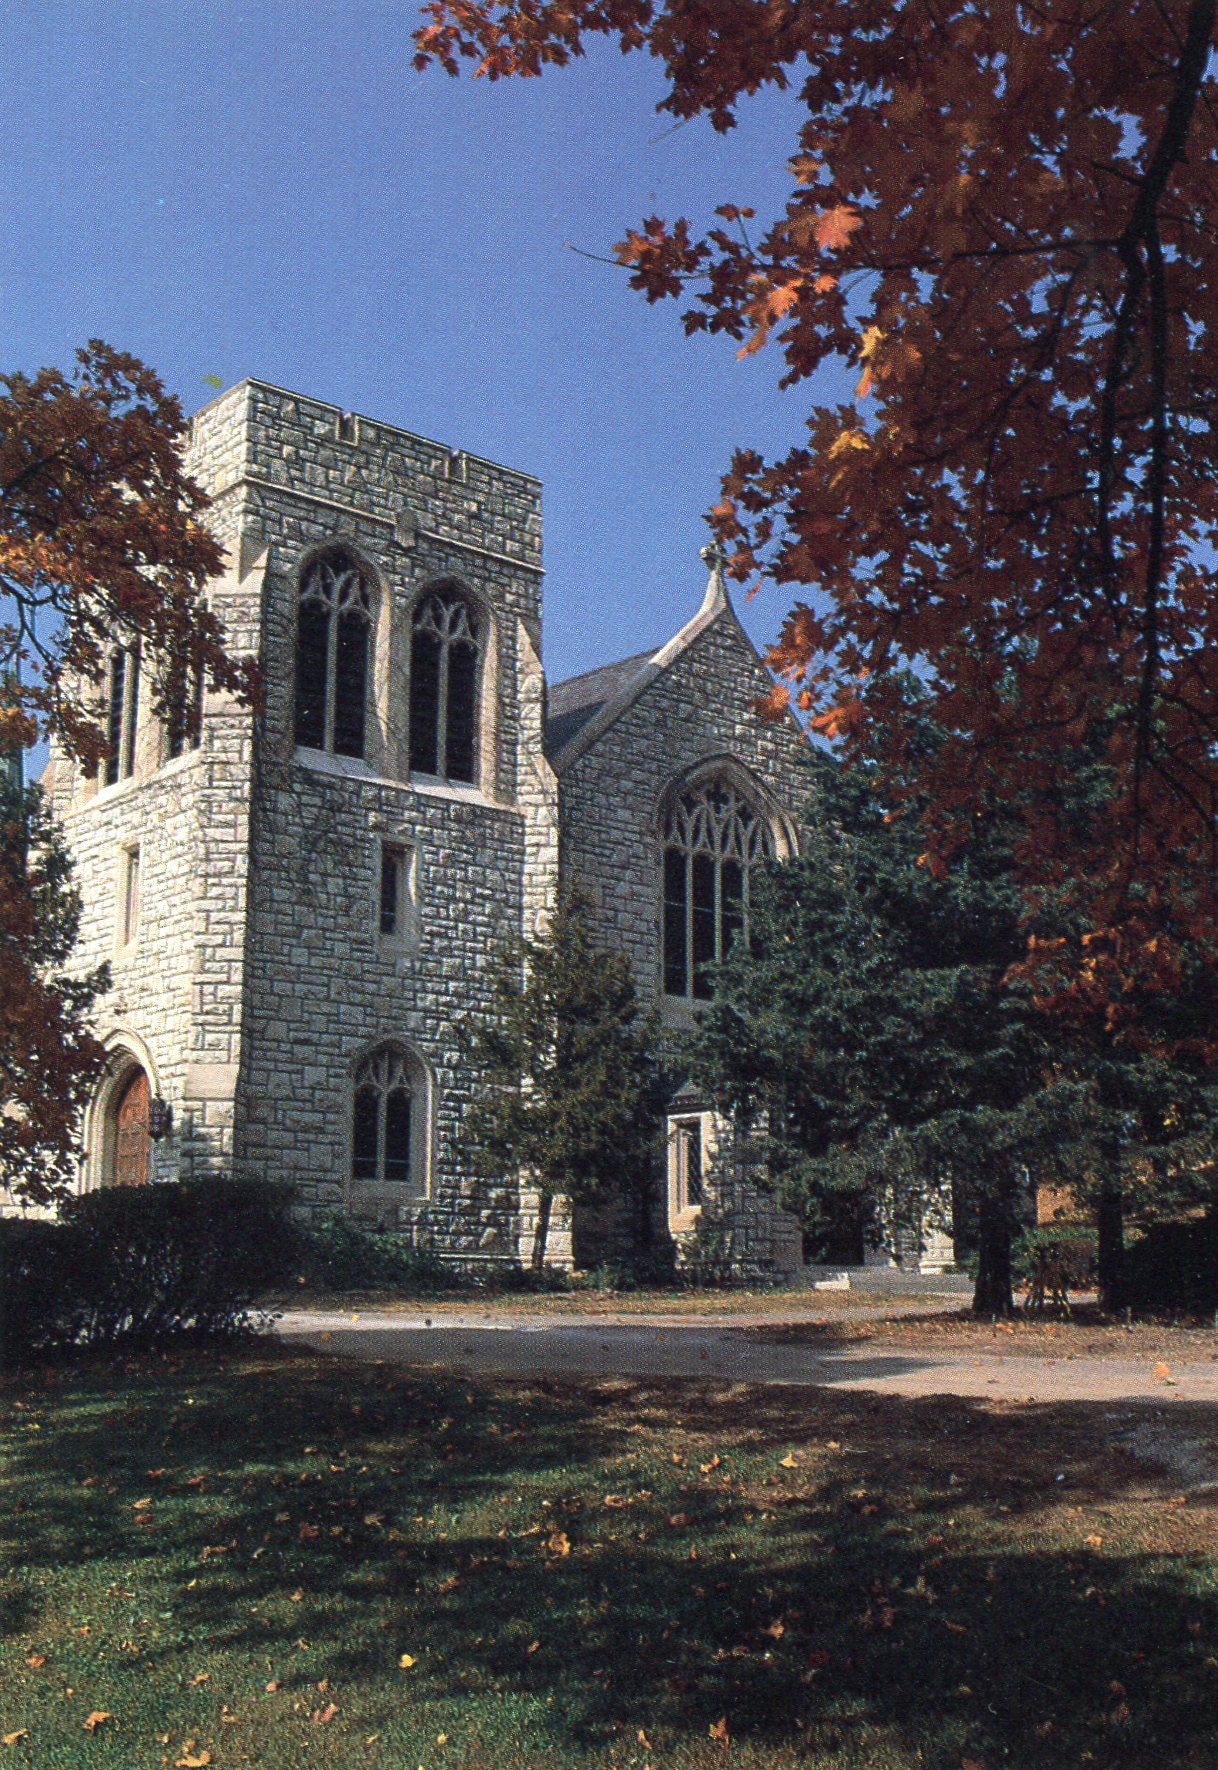 The Graham Tyler Chapel as it looks currently.